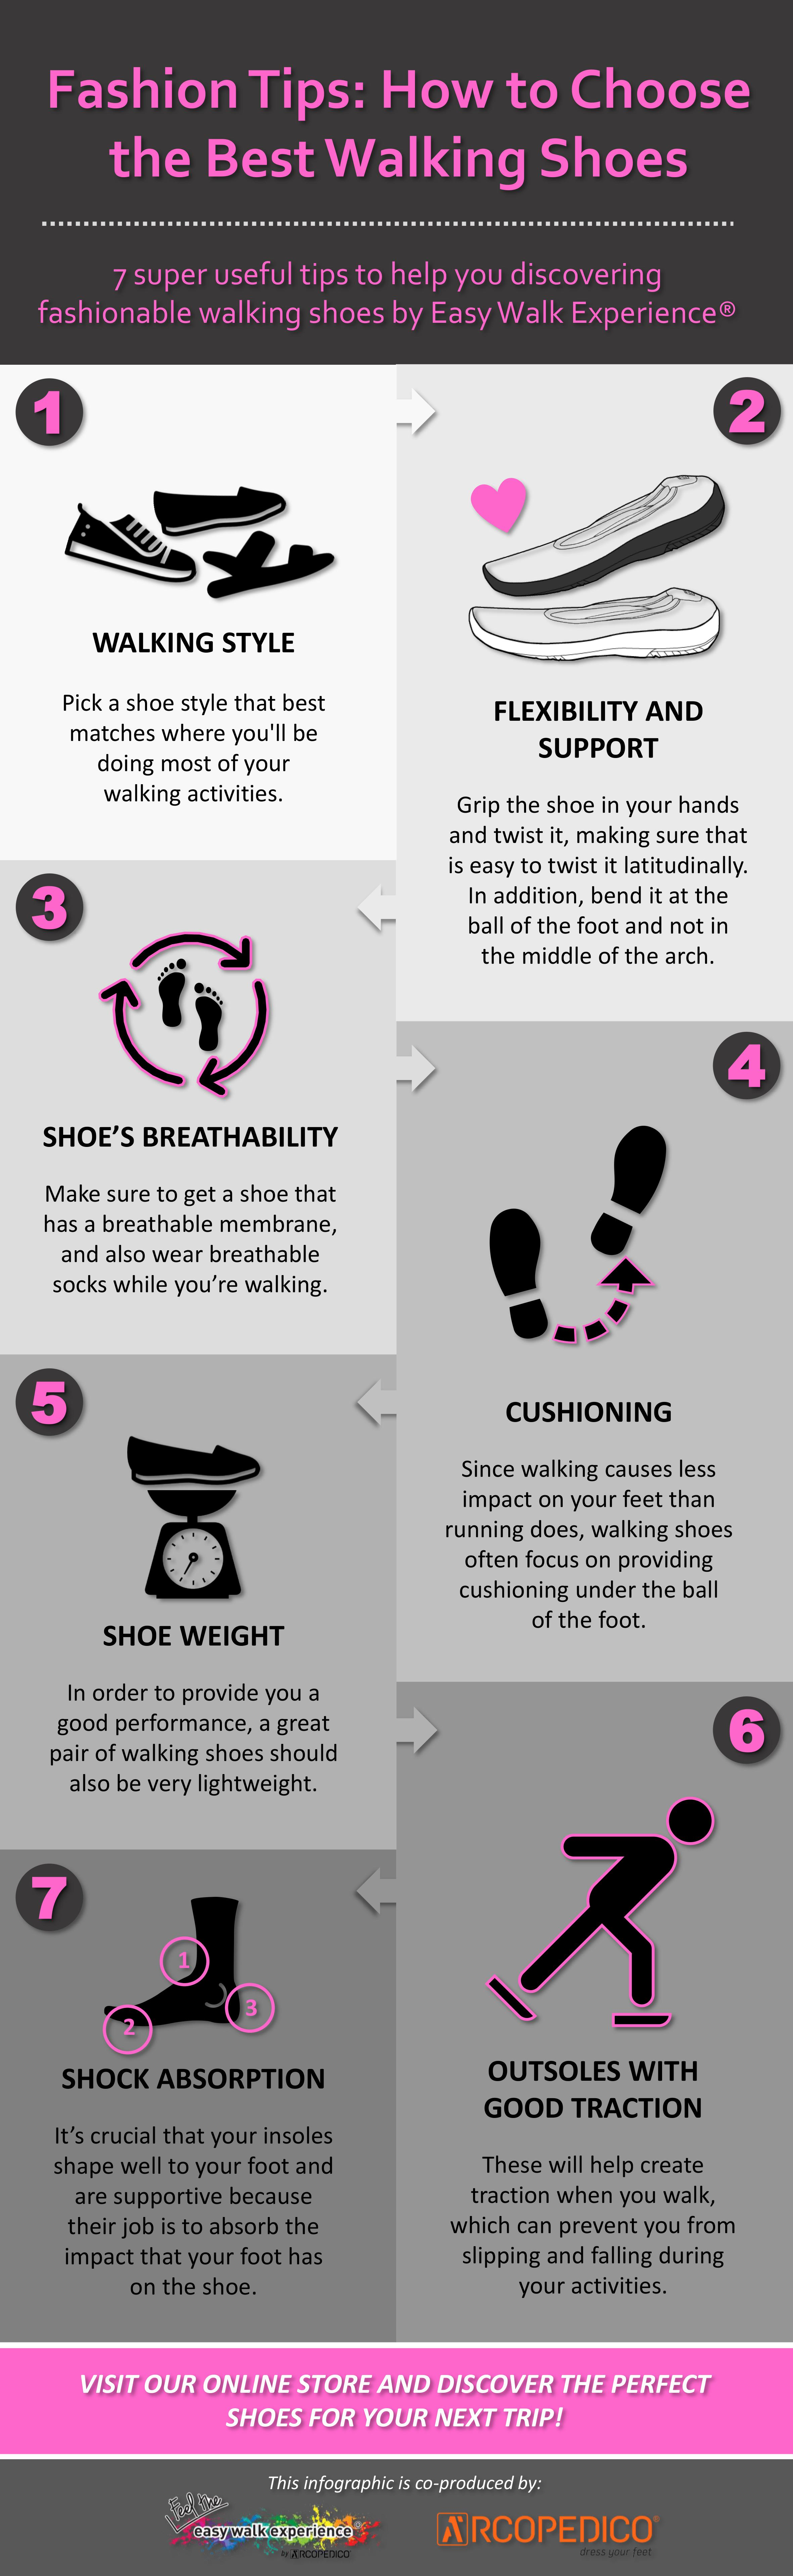 Are you looking for the best walking shoes? Check it out this awesome infographic full of super useful tips to help you discover fashionable walking shoes! ➡ Easy Walk Experience Blog is all about fashion tips, travel inspiration, lifestyle trends and much more.